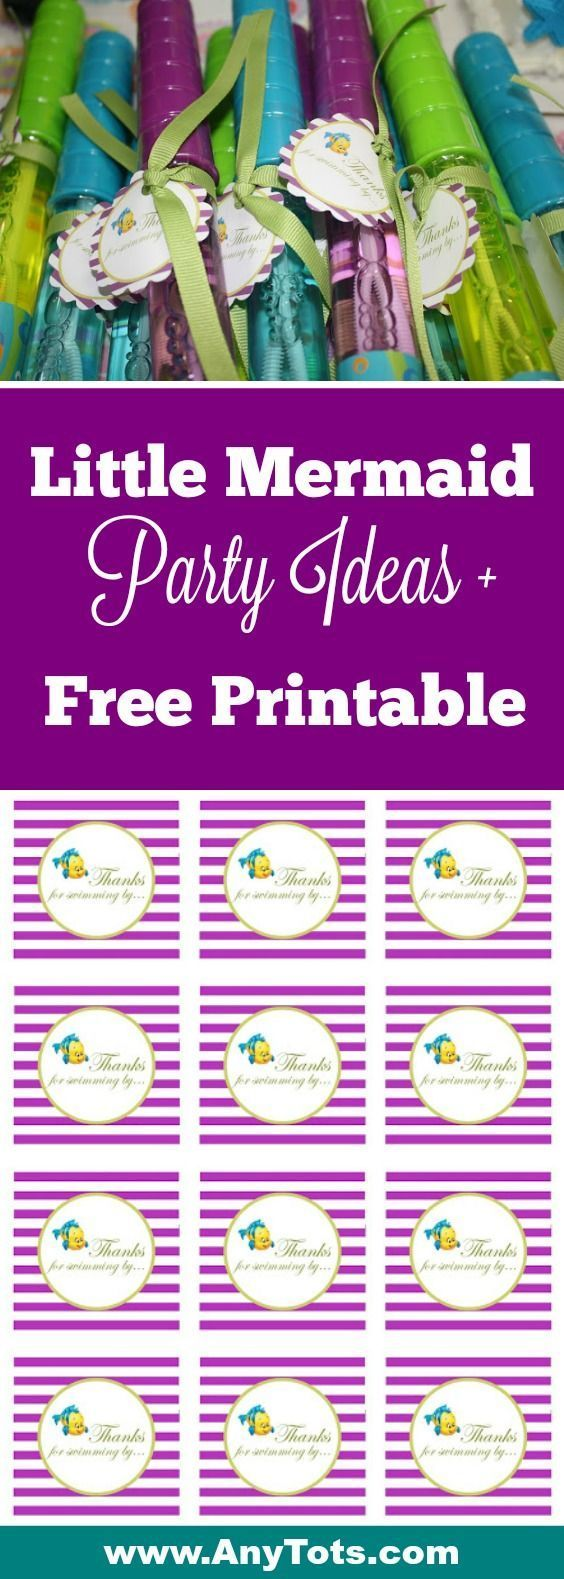 """Little Mermaid Party Ideas + Little Mermaid Free Printable Favor Tag. Re-create our Under the Sea party and use bubble wand as Little Mermaid Party Favor and use the Little Mermaid Free Printable Gift Tag that sez """"Thanks for Swimming By:. More Little Mermaid Birthday Party Ideas on the blog, http://www.anytots.com"""